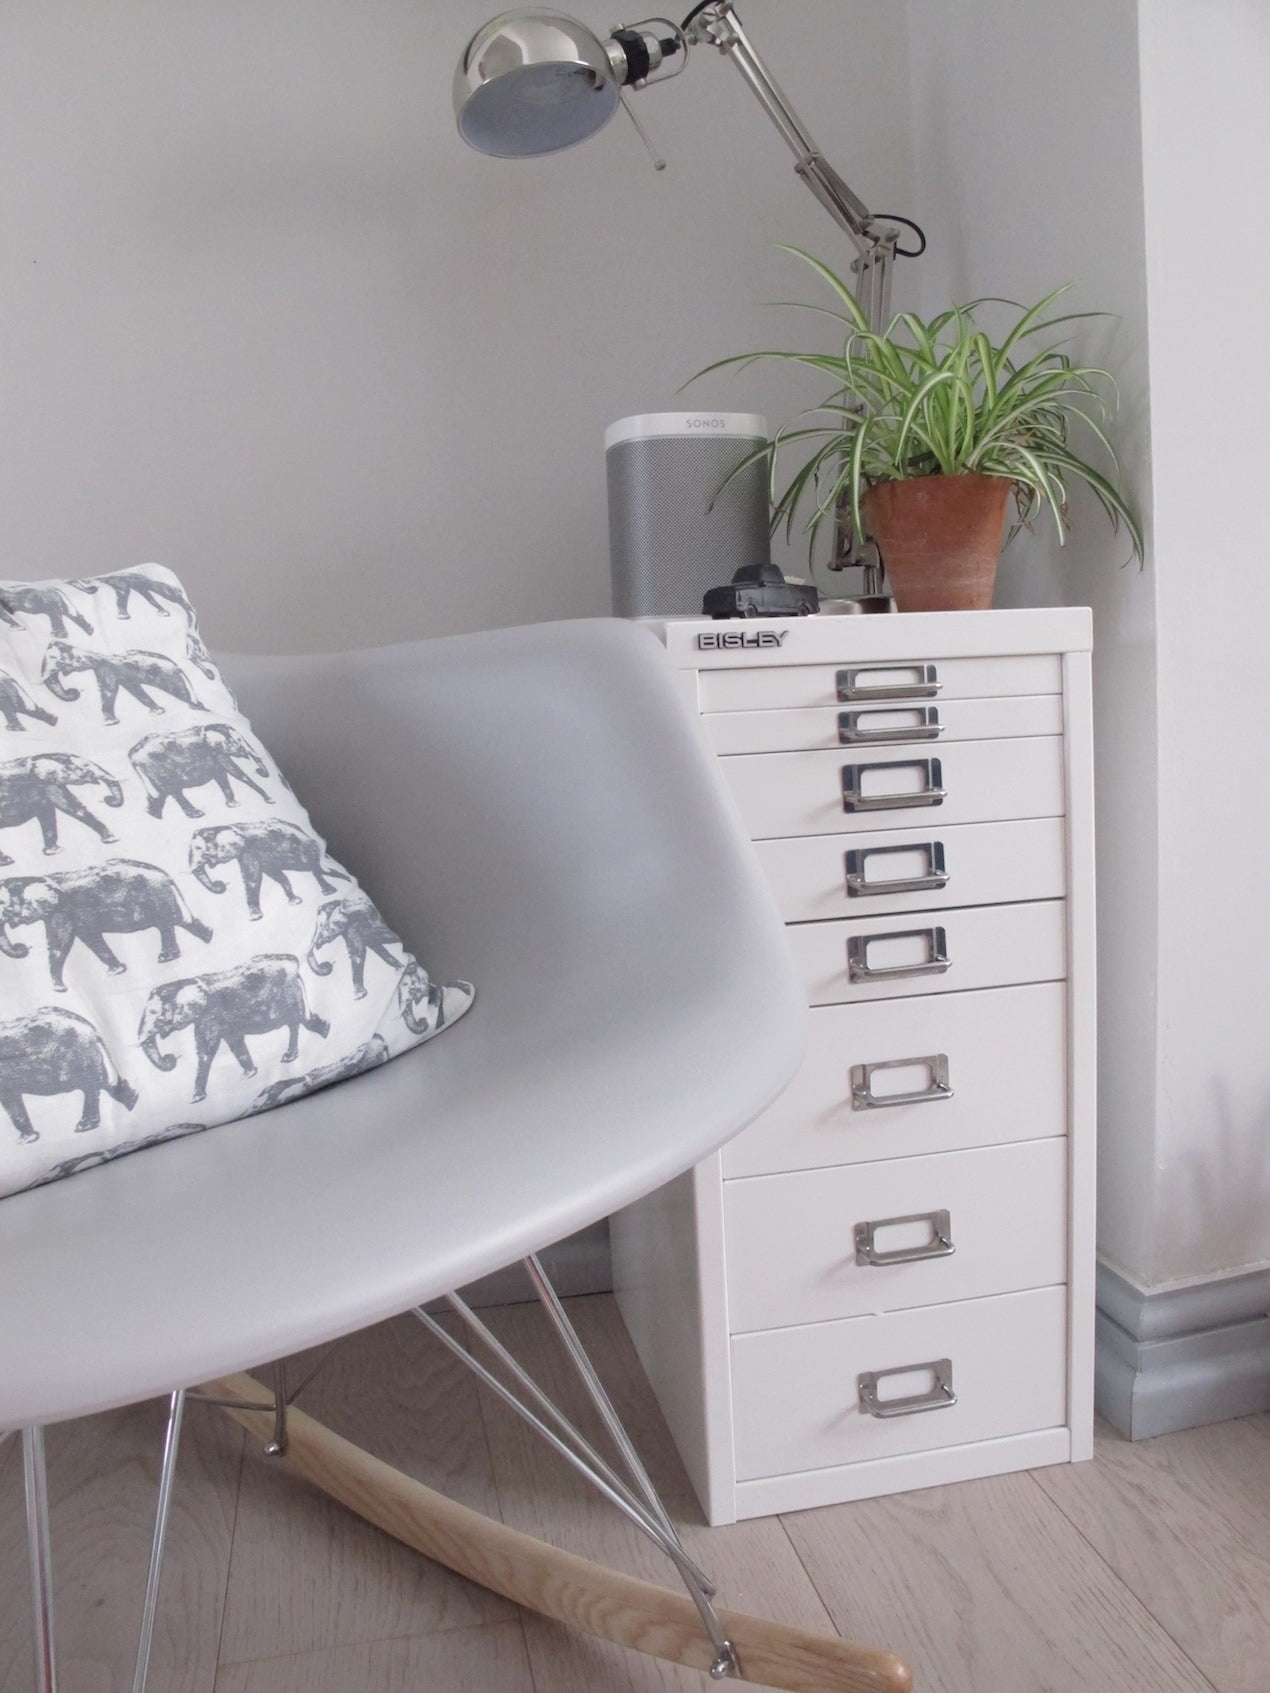 The perfect solution for your paperwork woes, and a way to stylishly organise your home with an iconic Bisley filing cabinet. www.welovehomeblog.com